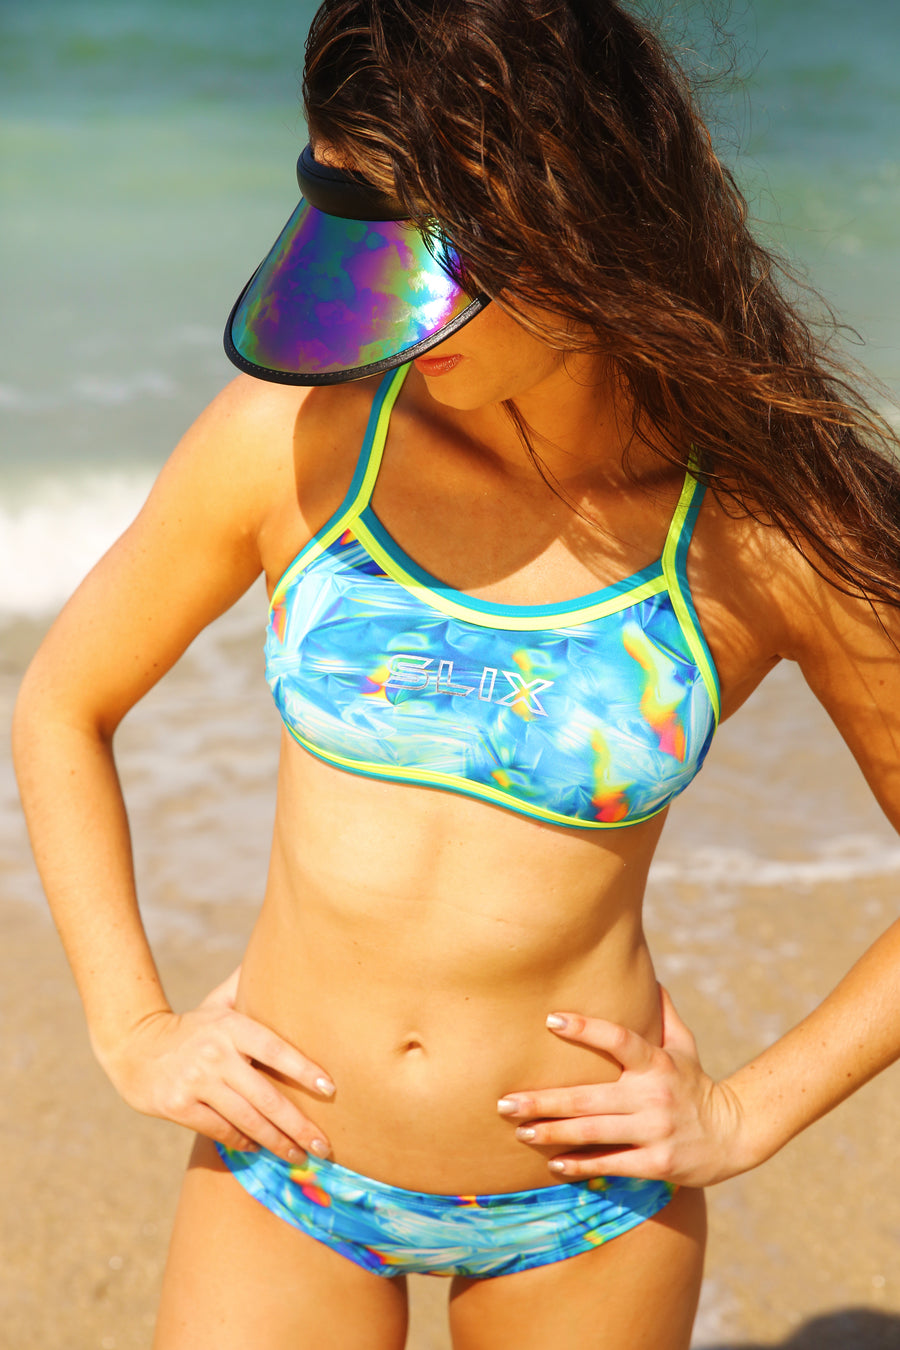 Say Hello to Cello Double Take Bikini Top Slix Australia